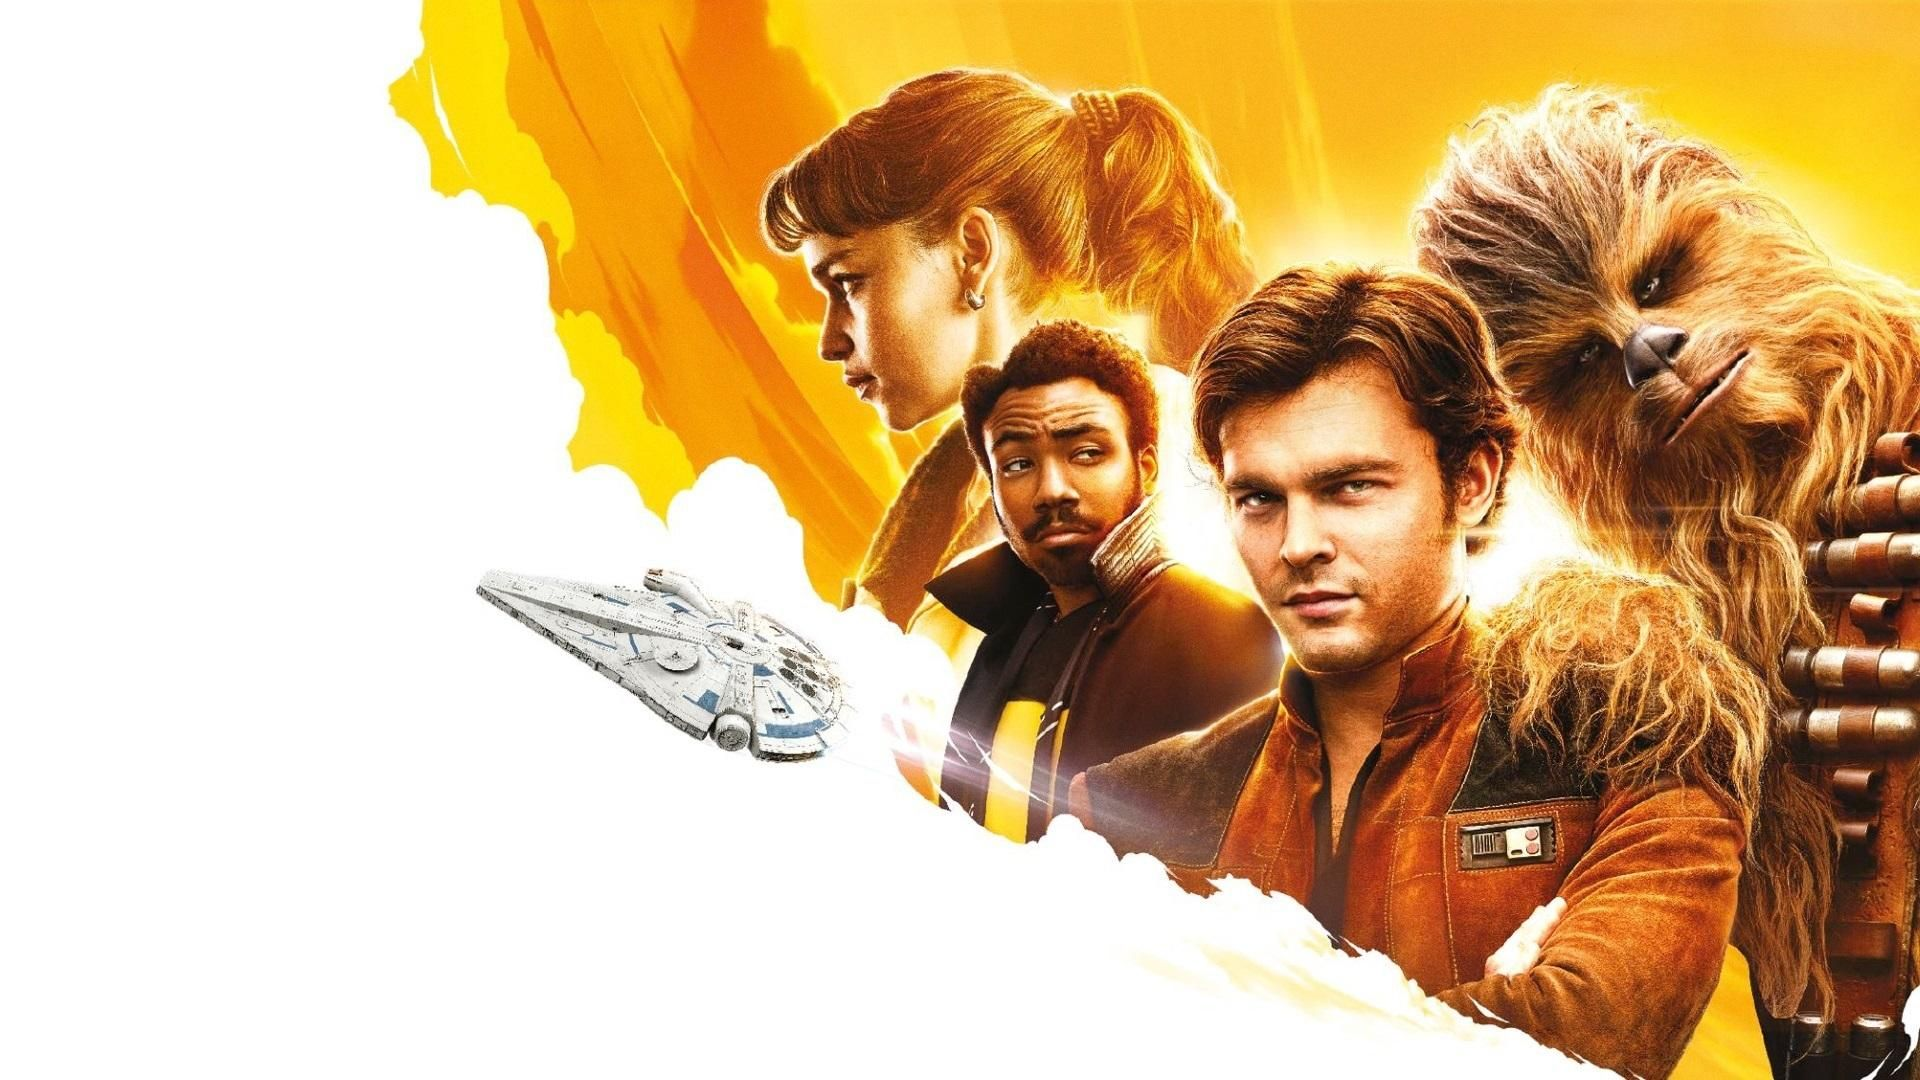 Solo A Star Wars Story 2018 Poster Hd Movies 4k Wallpapers Images Backgrounds Photos And Pictures